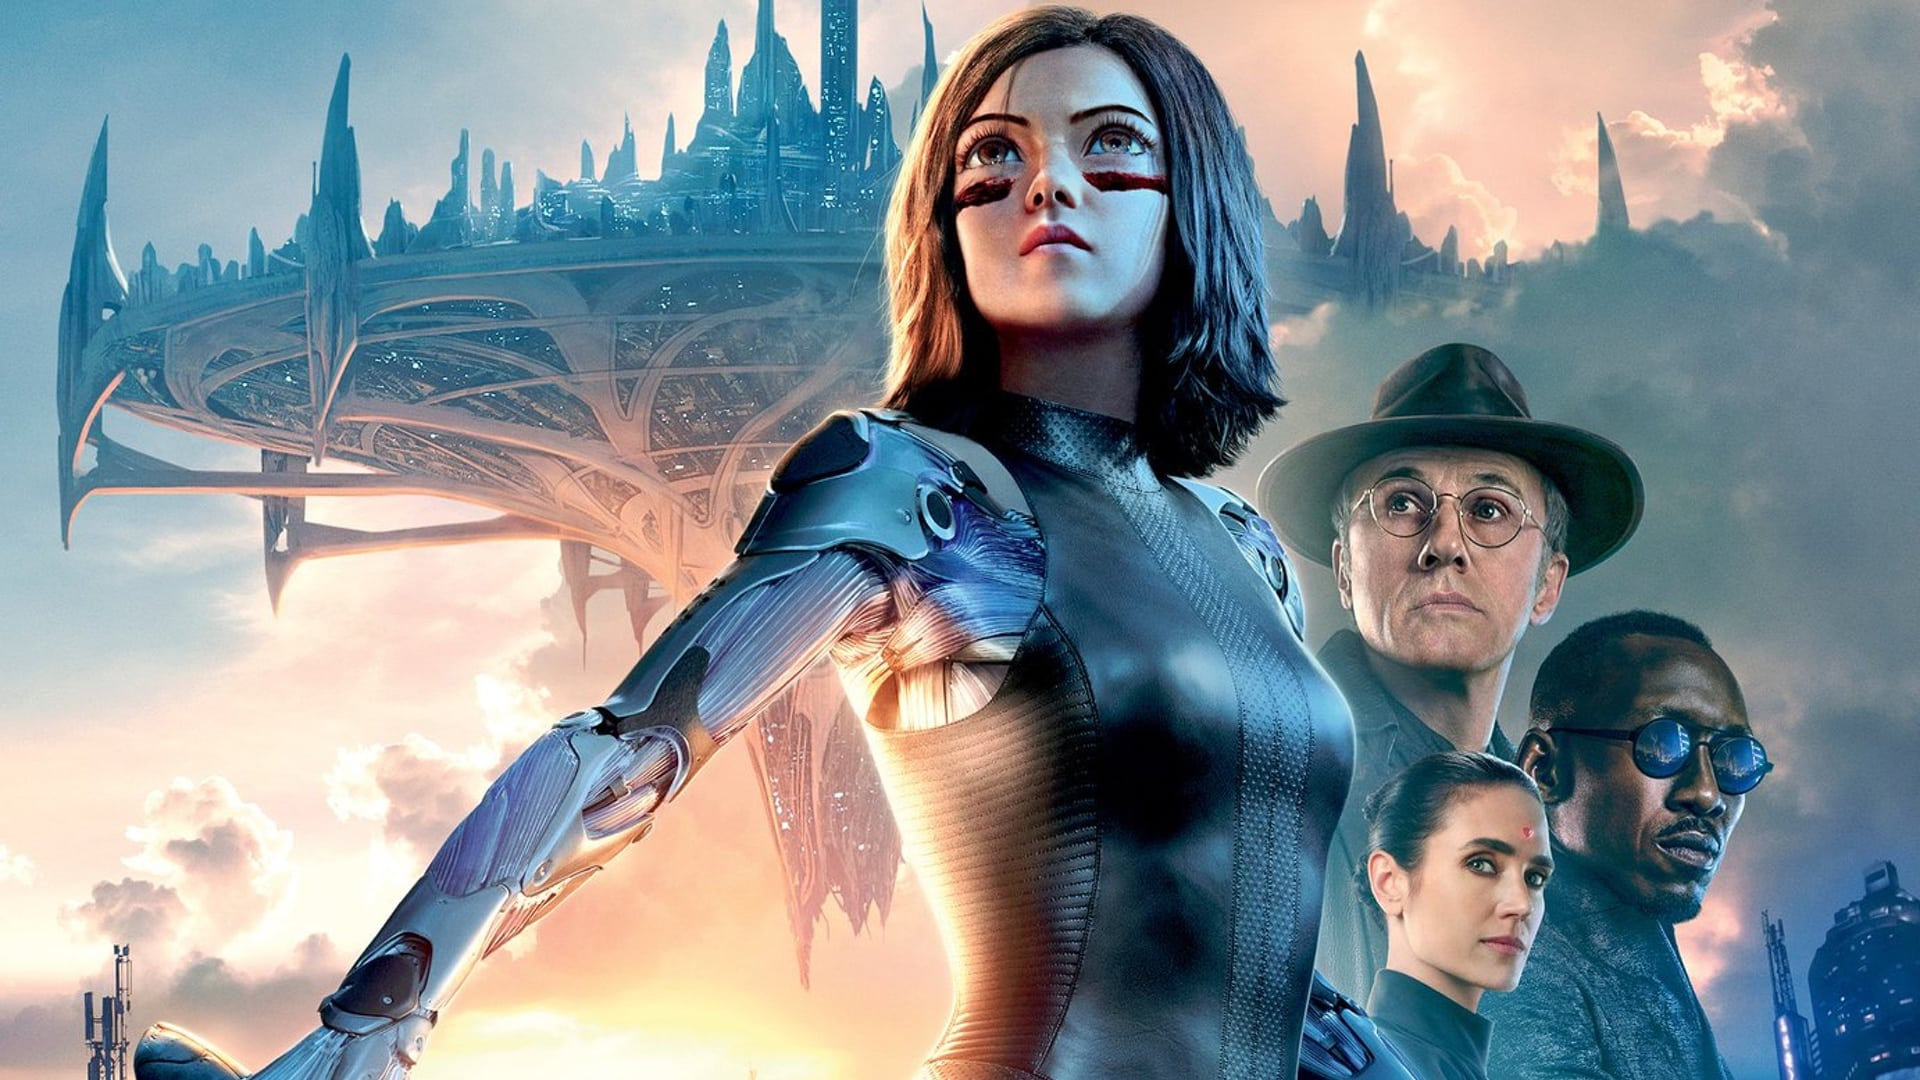 Super Bowl nám predstavil aj trailer na nový film Alita: Battle Angel